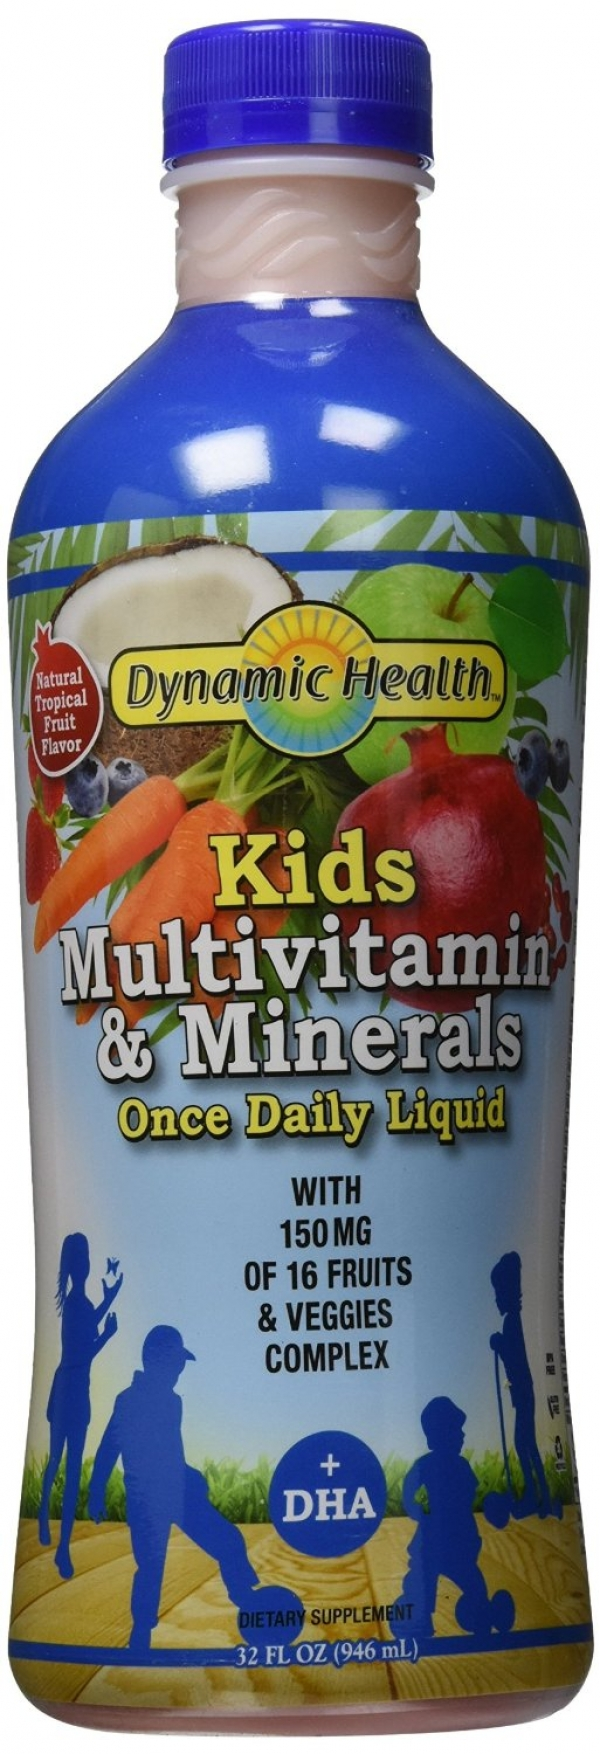 Dynamic Health Kids Multivitamin & Minerals Plus DHA Once Daily Liquid 32 oz